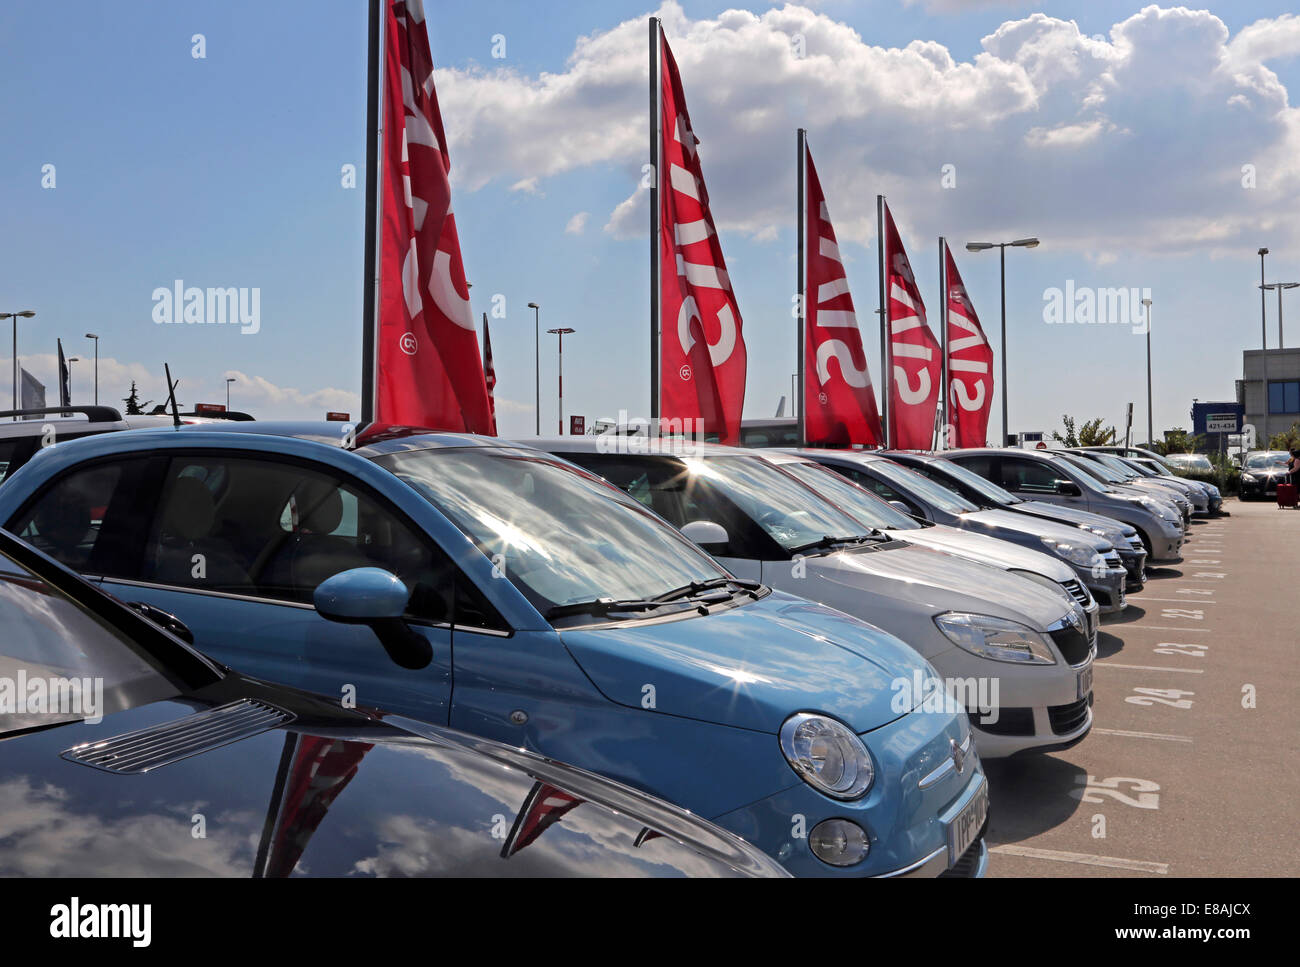 Car Hire Greece Athens International Airport